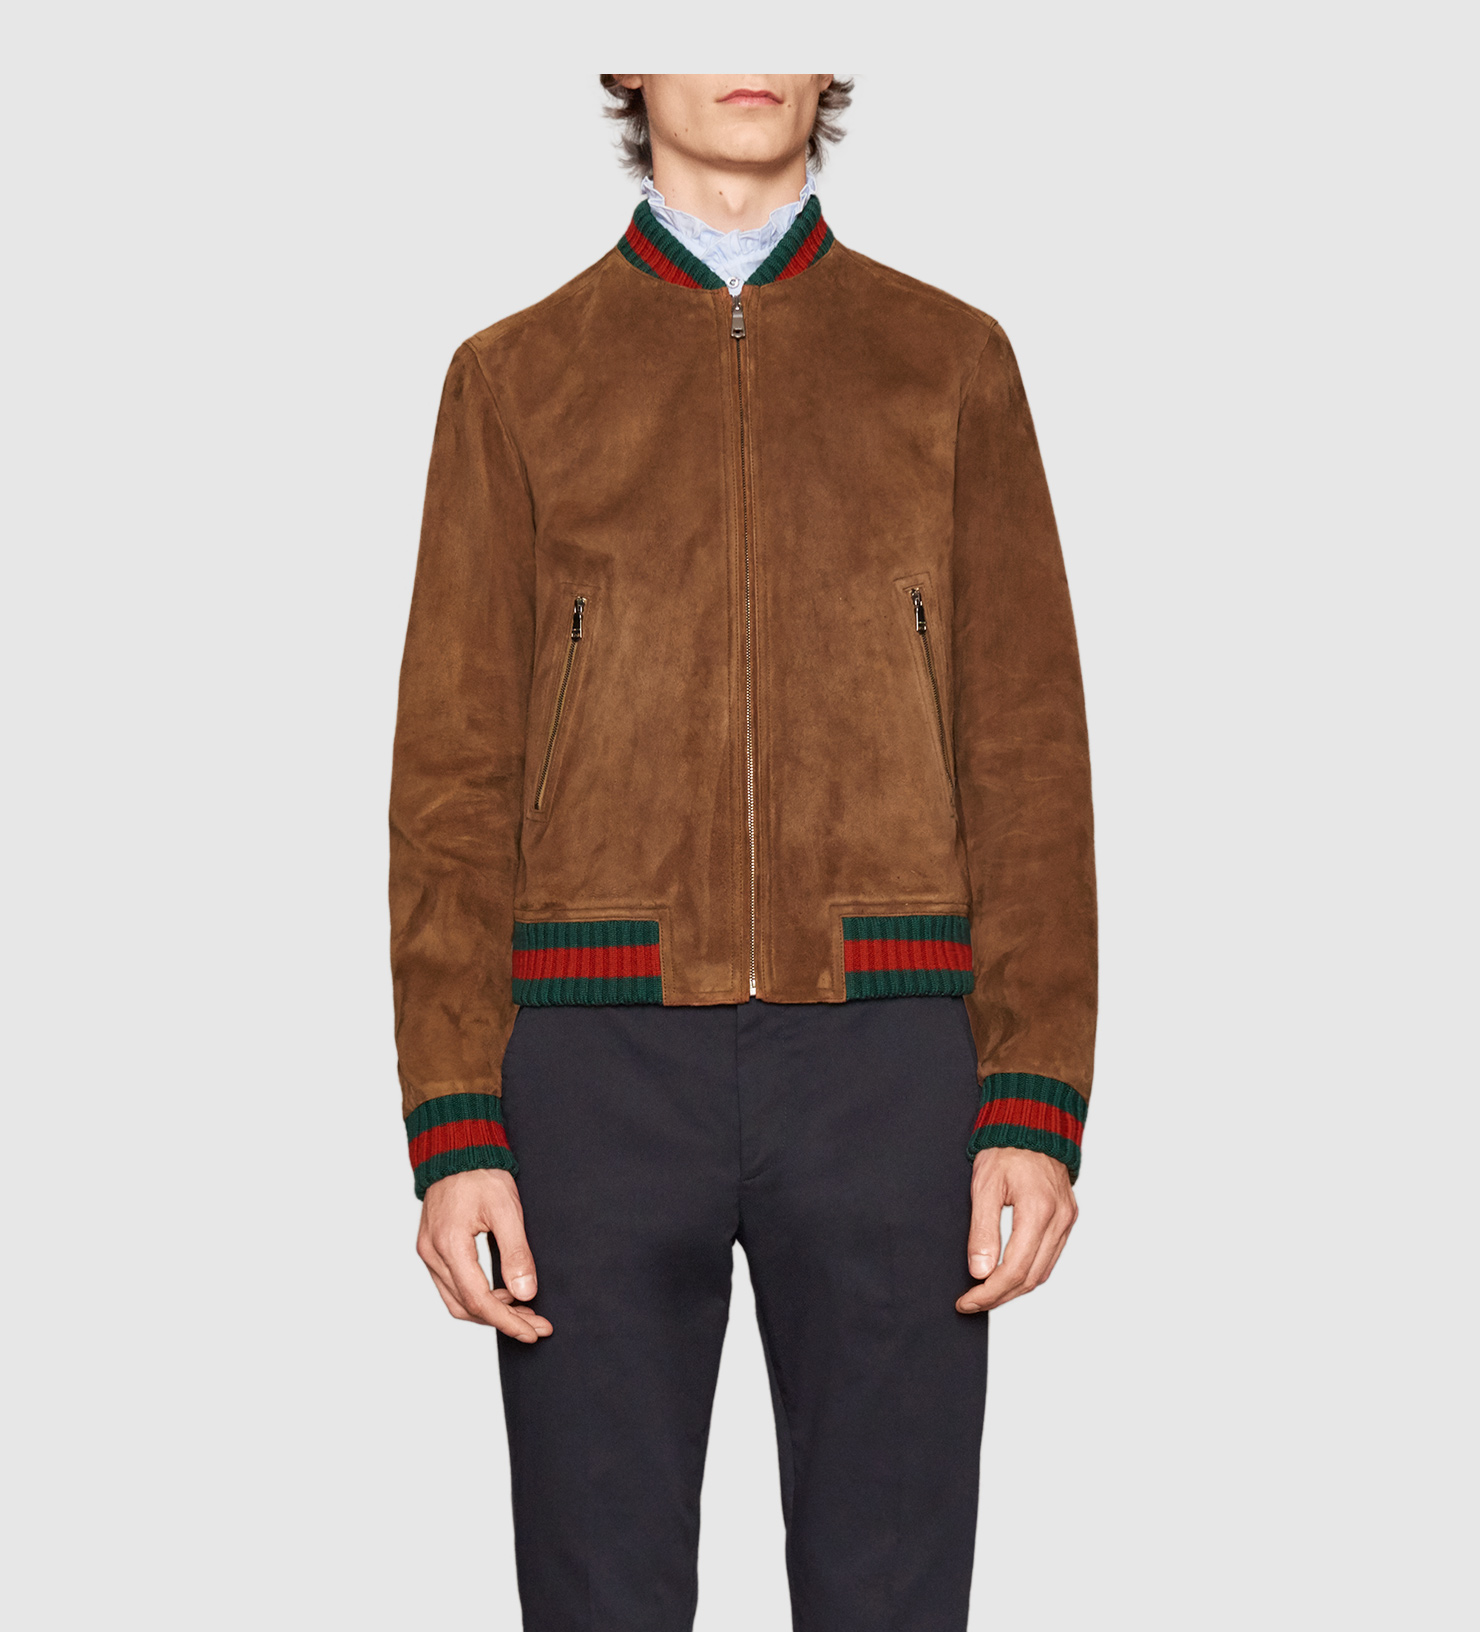 Gucci Suede Jacket With Web in Brown for Men - Lyst a0e76c594a2b